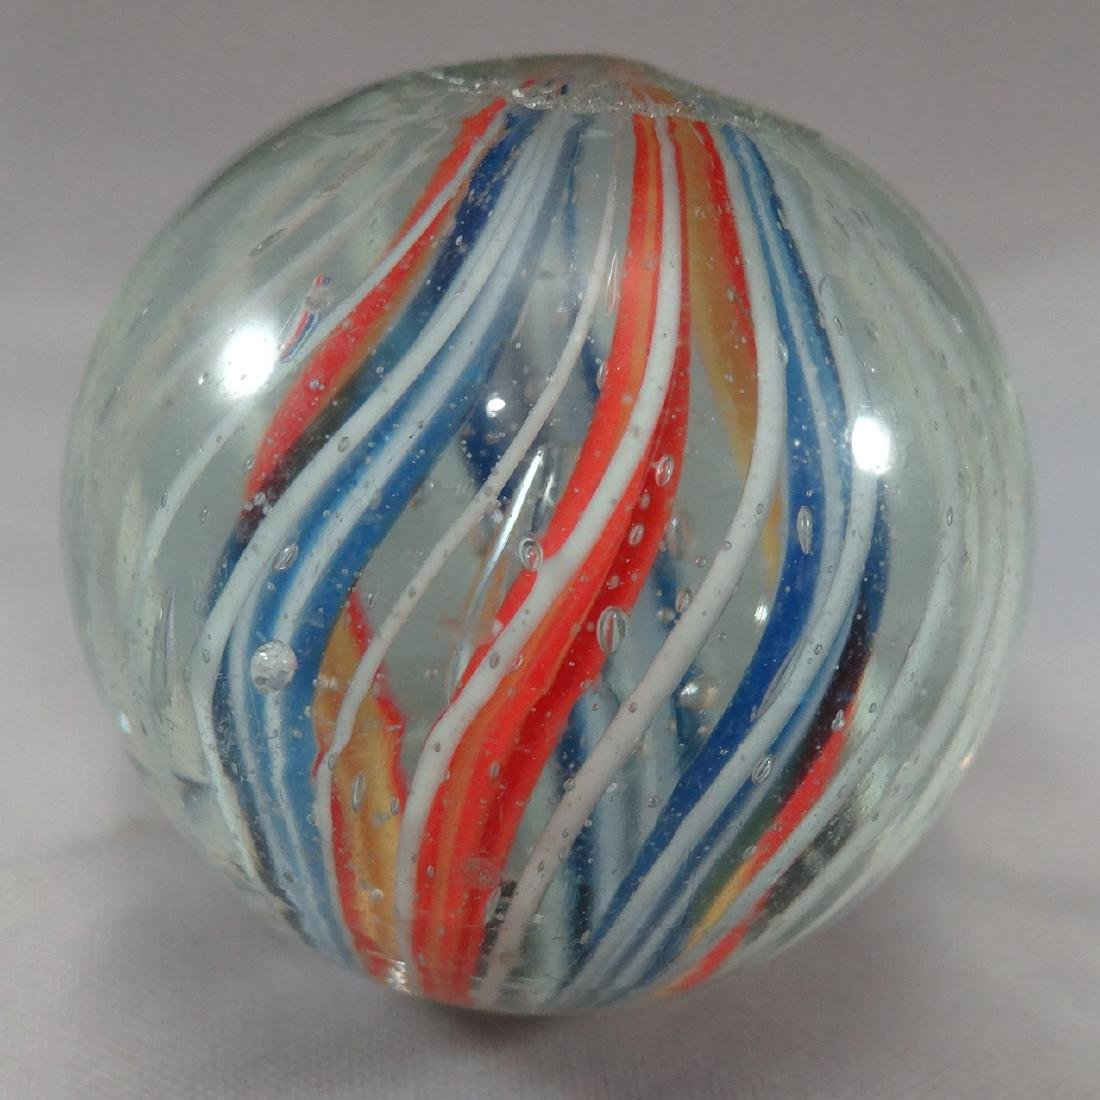 "Lot 56. SWIRL, Divided Core. 1-3/16"". 9.7"